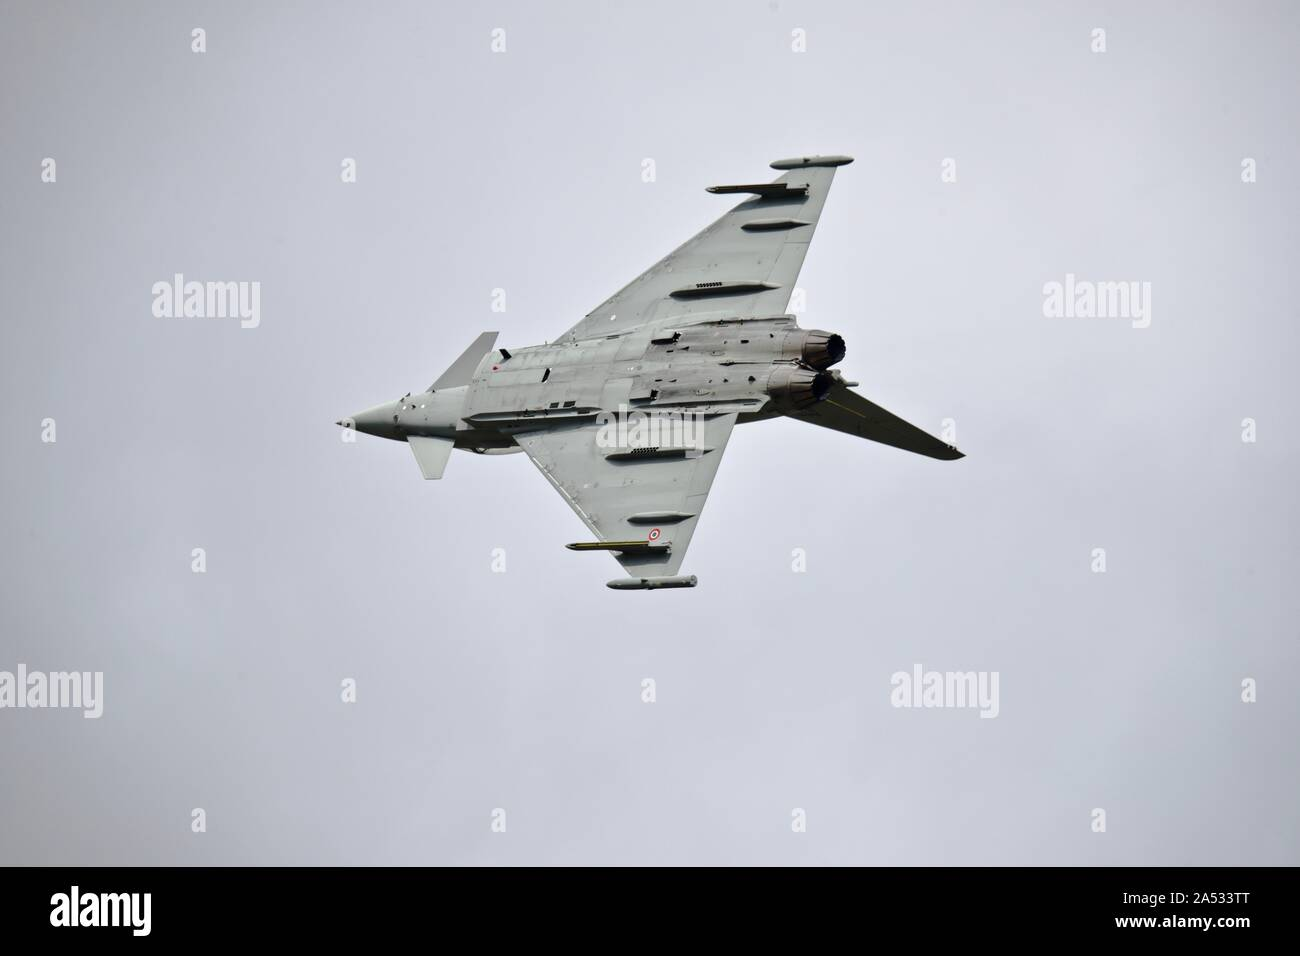 Italian Air Force F-2000A Typhoon fighter jet performing at the 2019 Royal International Air Tattoo Stock Photo